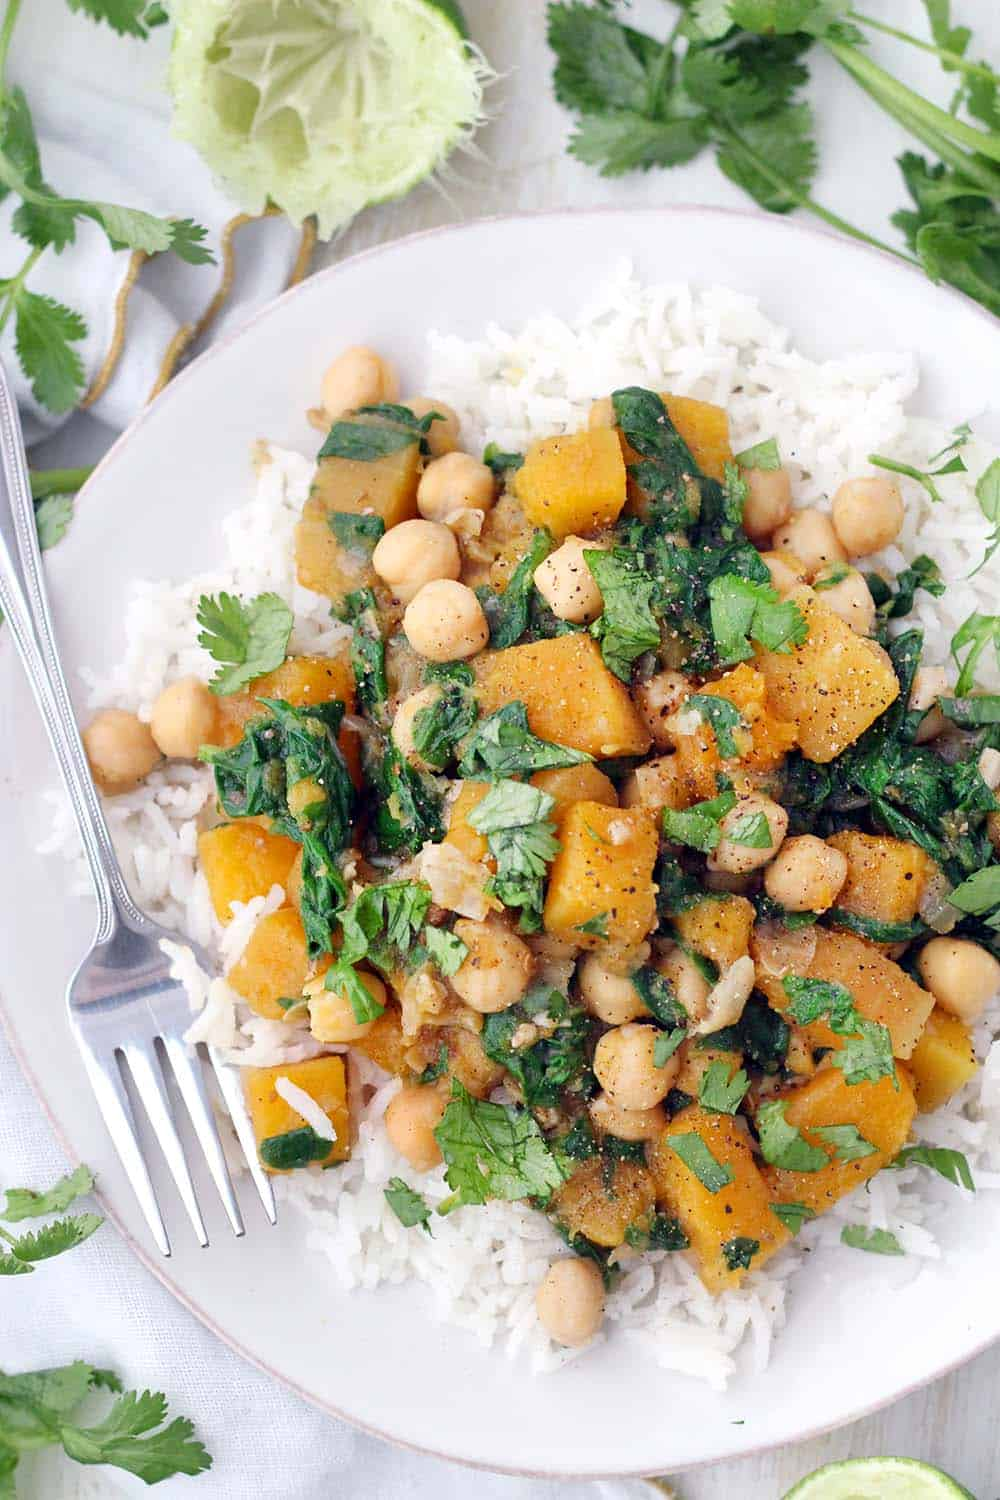 This spicy, healthy, vegan stew is packed full of butternut squash, chickpeas, spinach, and warm moroccan flavors. It's healthy, hearty, and gluten-free. Make in bulk and freeze the extra! #RasElHanout #VeganRecipes #ButternutSquash #Chickpeas #VeganStews #GlutenFree #GrainFree #DairyFree